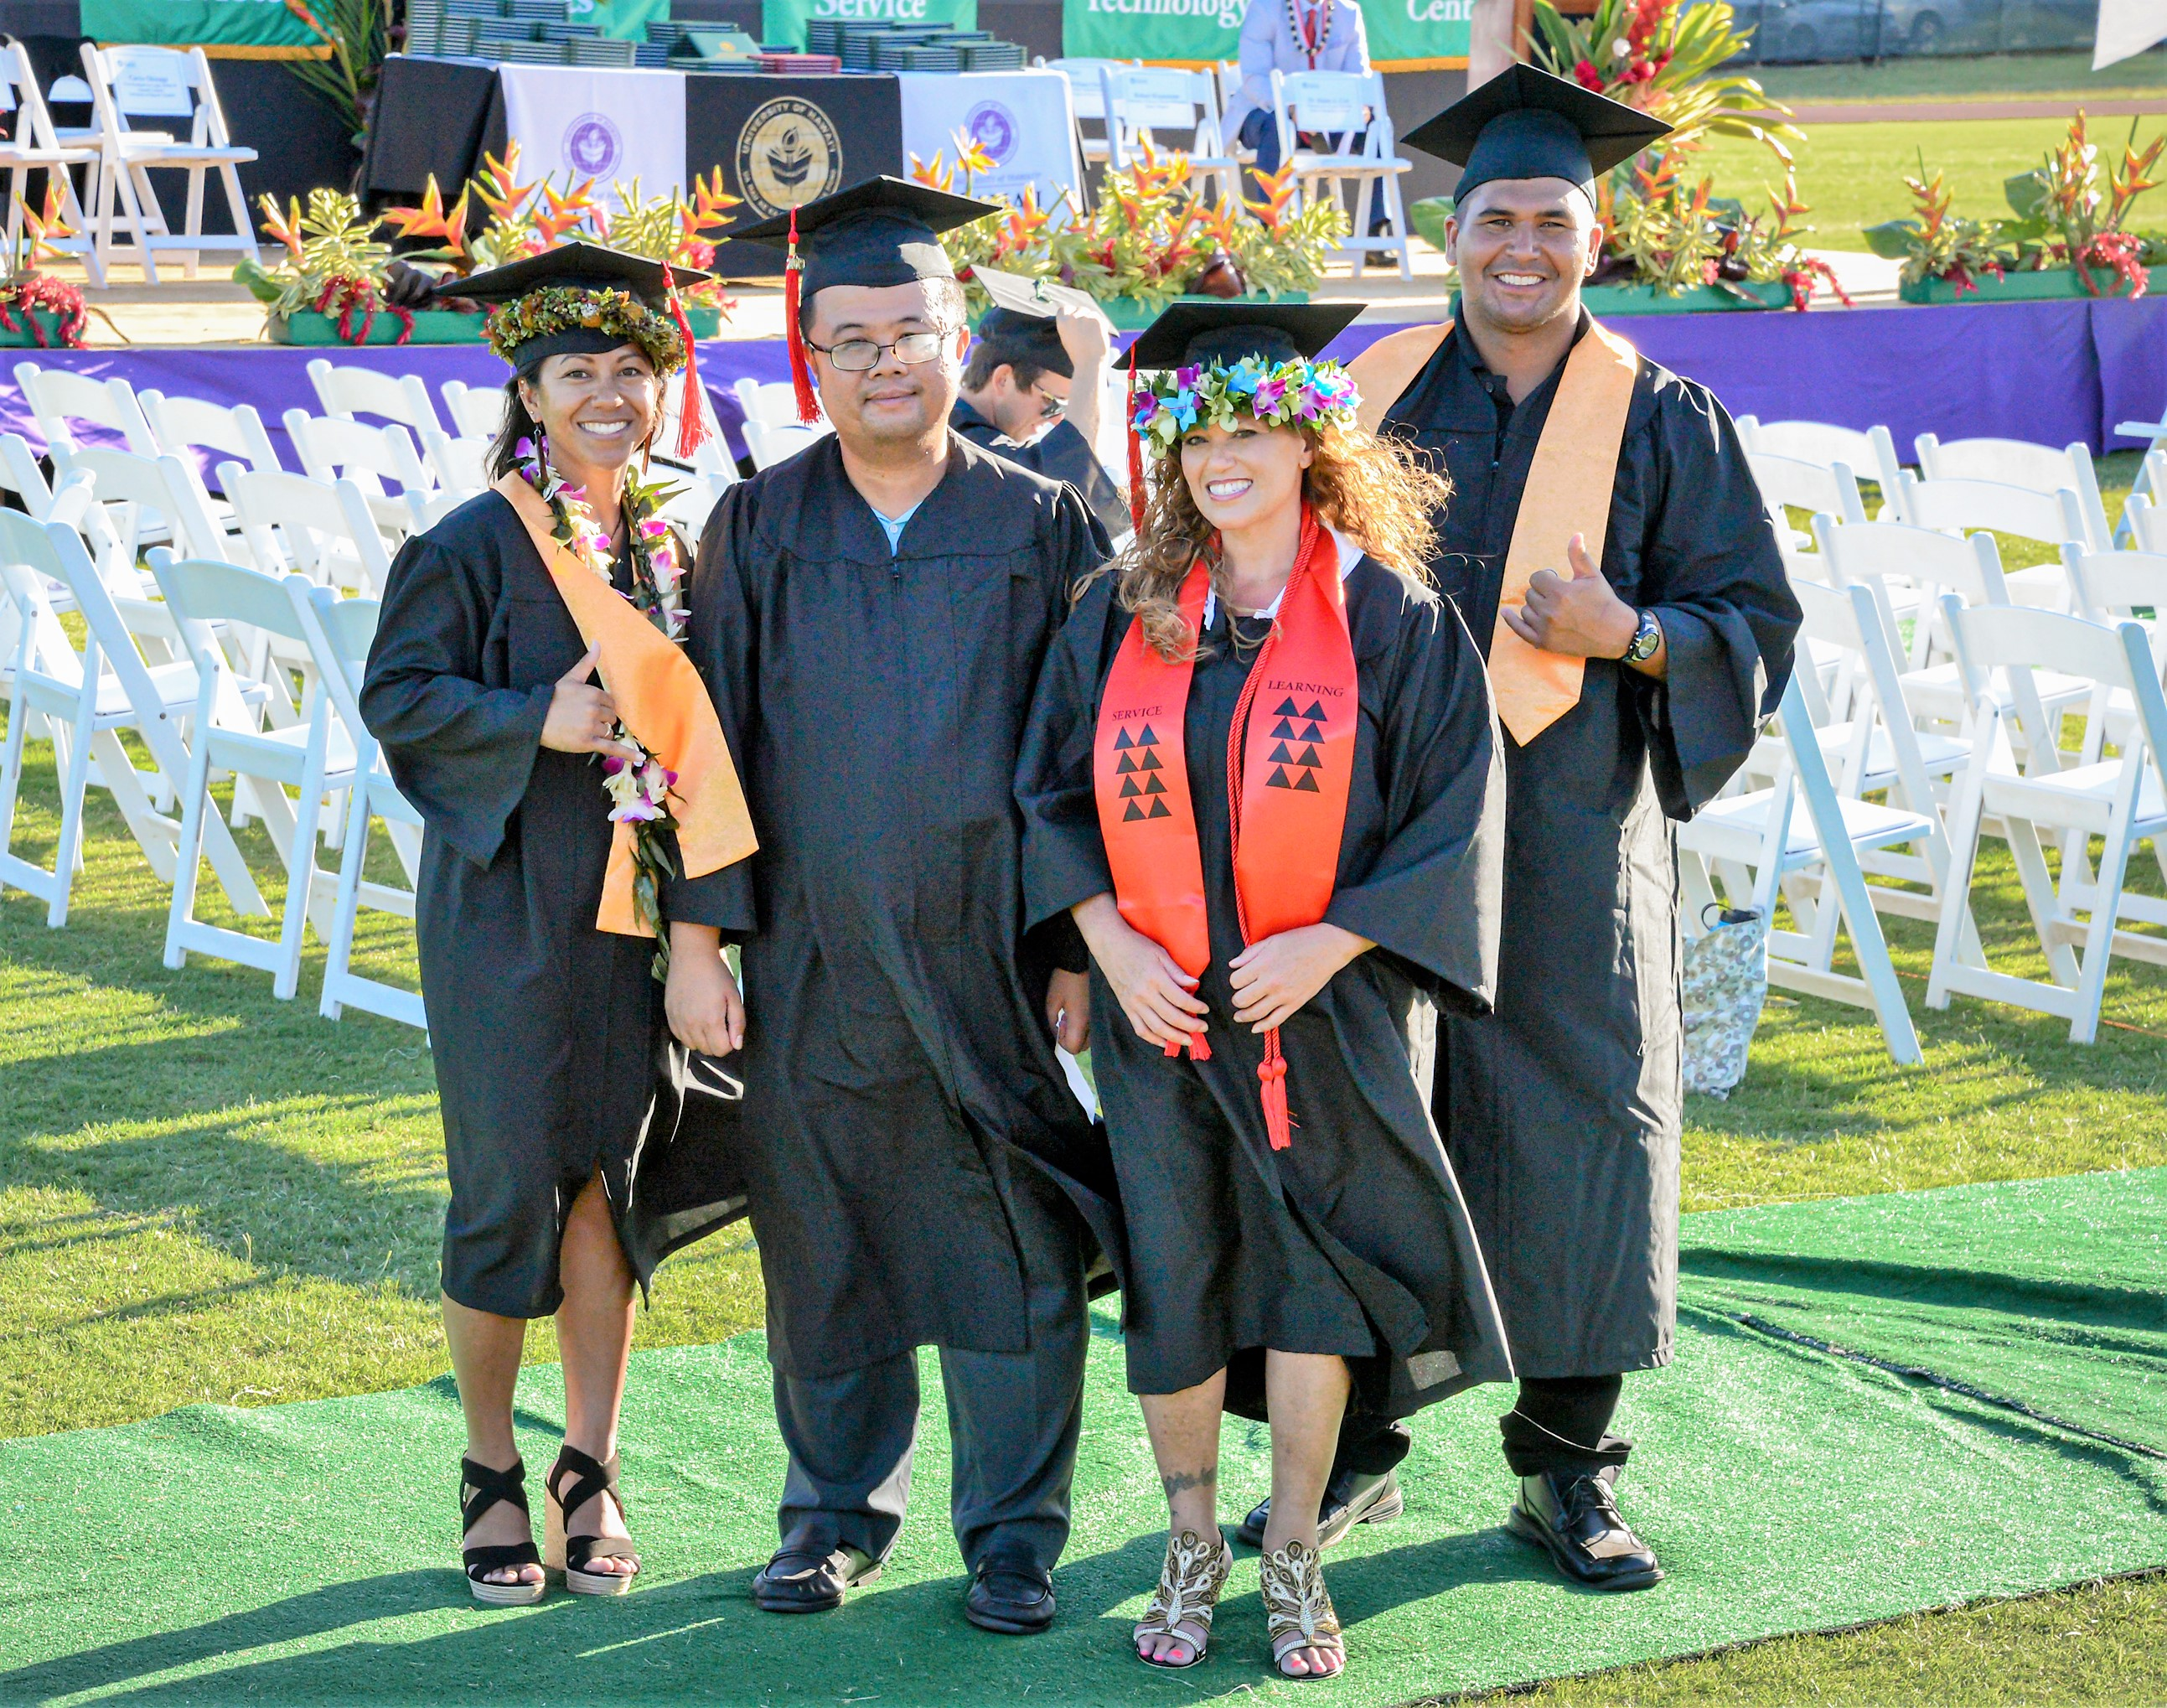 photo of four people in graduation caps and gowns standing on a grassy lawn with white folding chairs and a stage in the background. There are two men and two women. One of the men is flashing a shaka sign